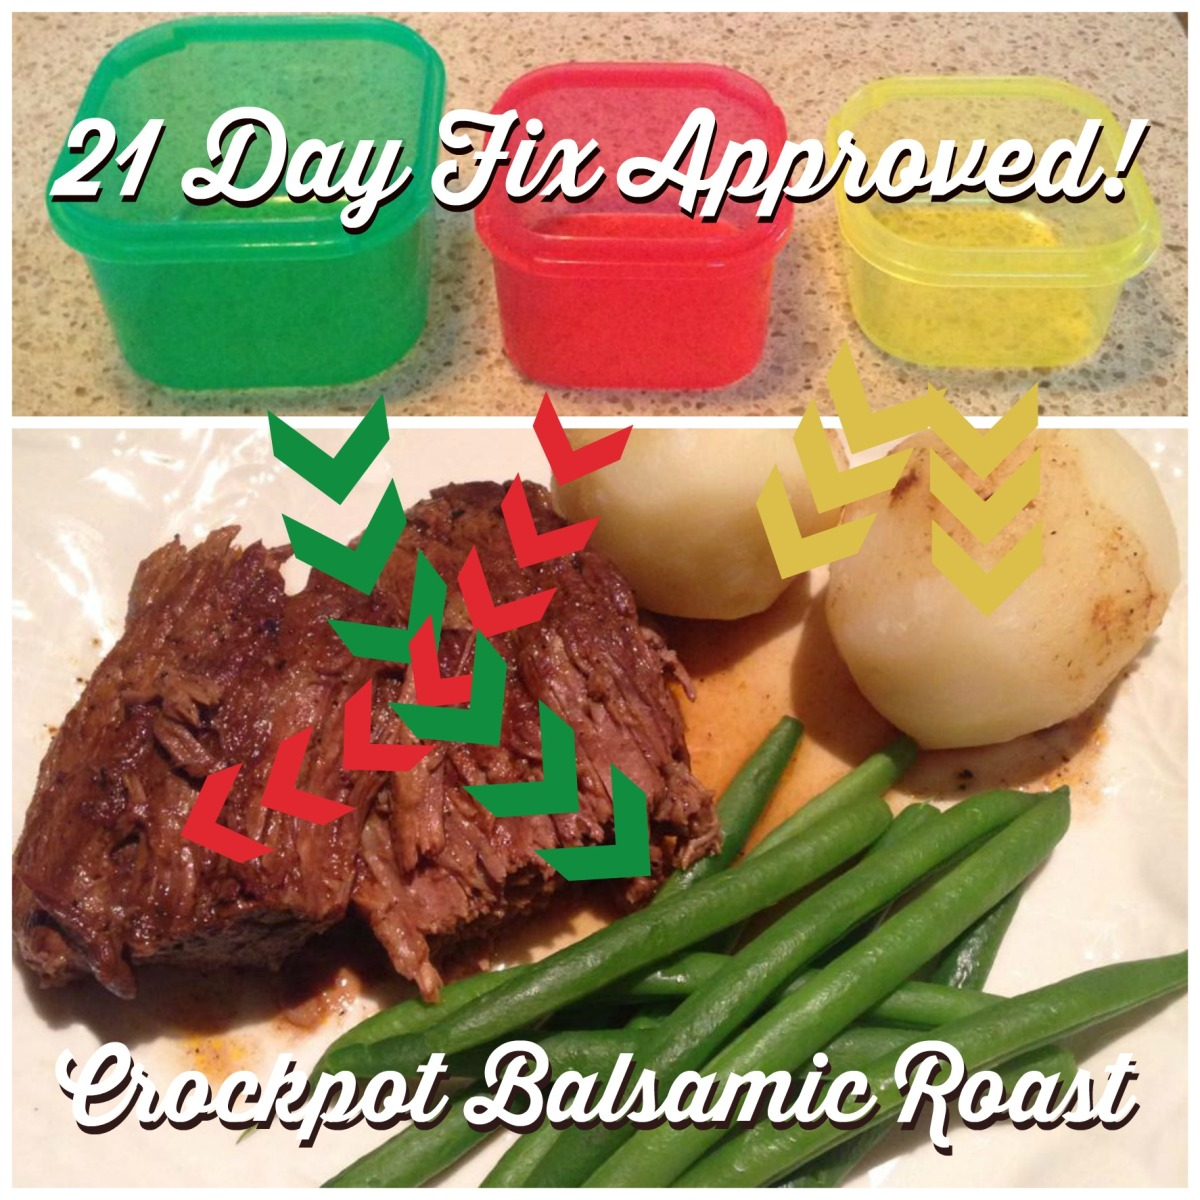 Crockpot Balsamic Roast